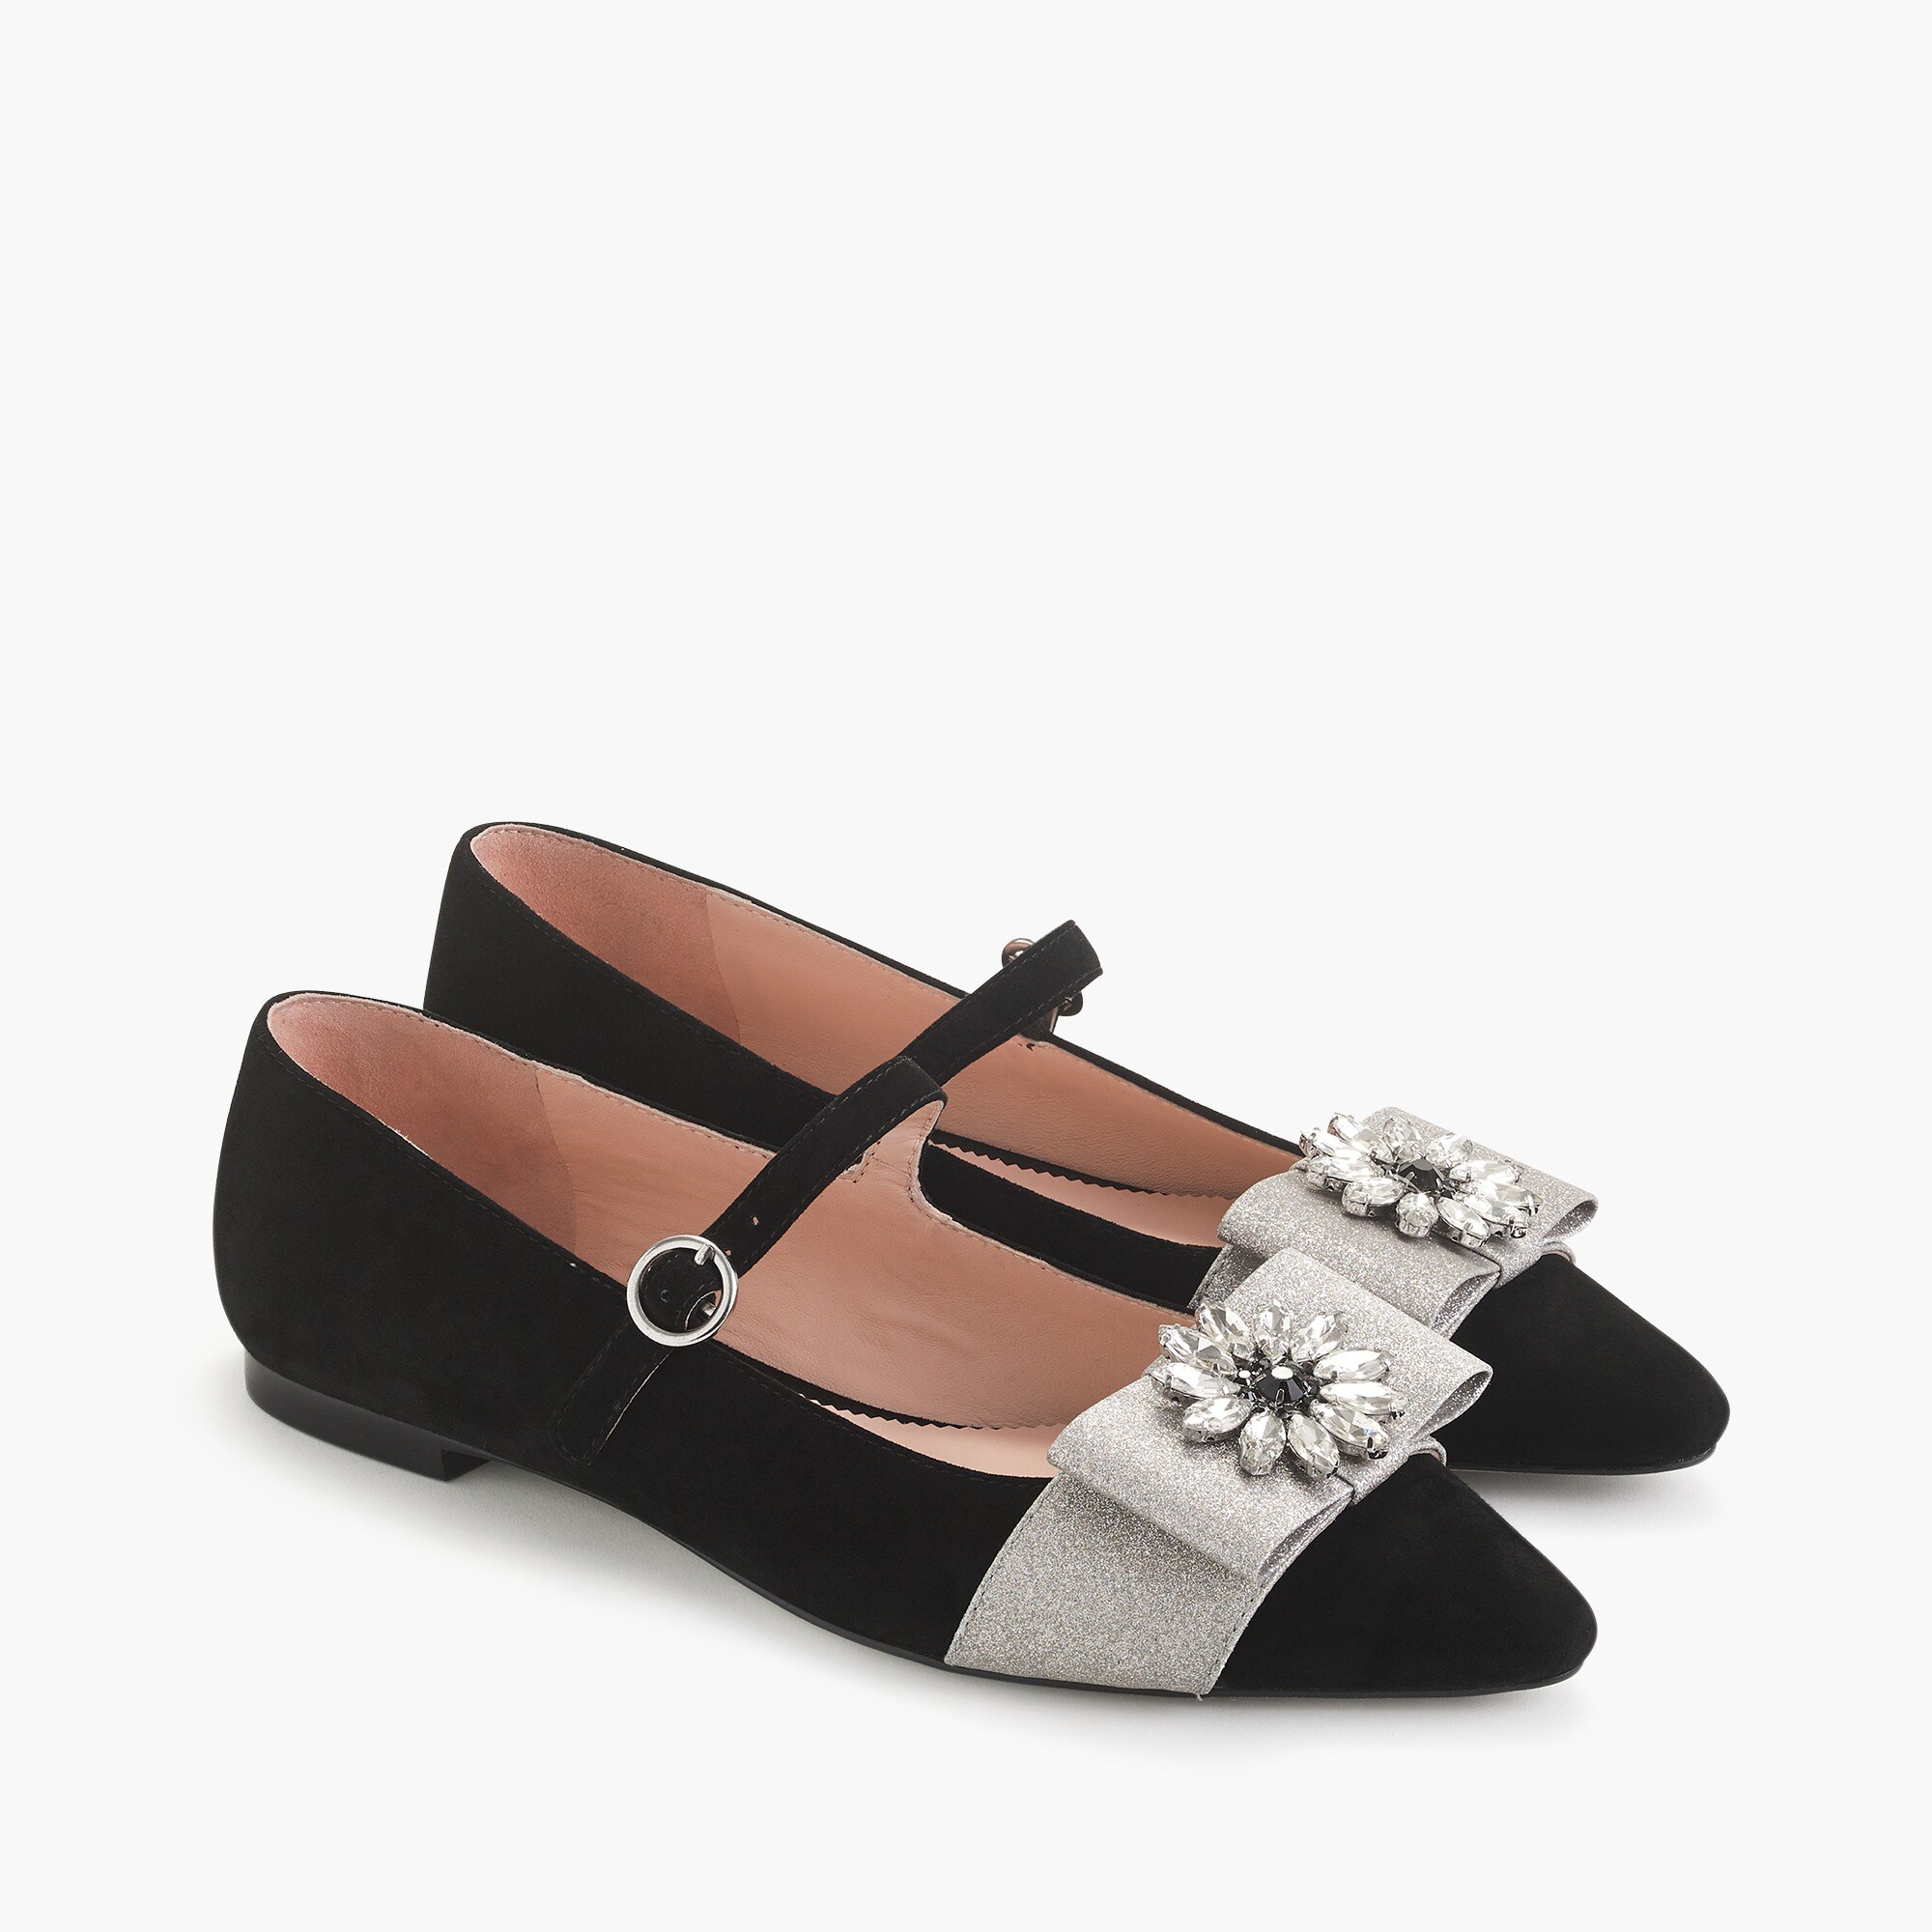 womens Pointed-toe Mary Jane flats with embellished bow in velvet